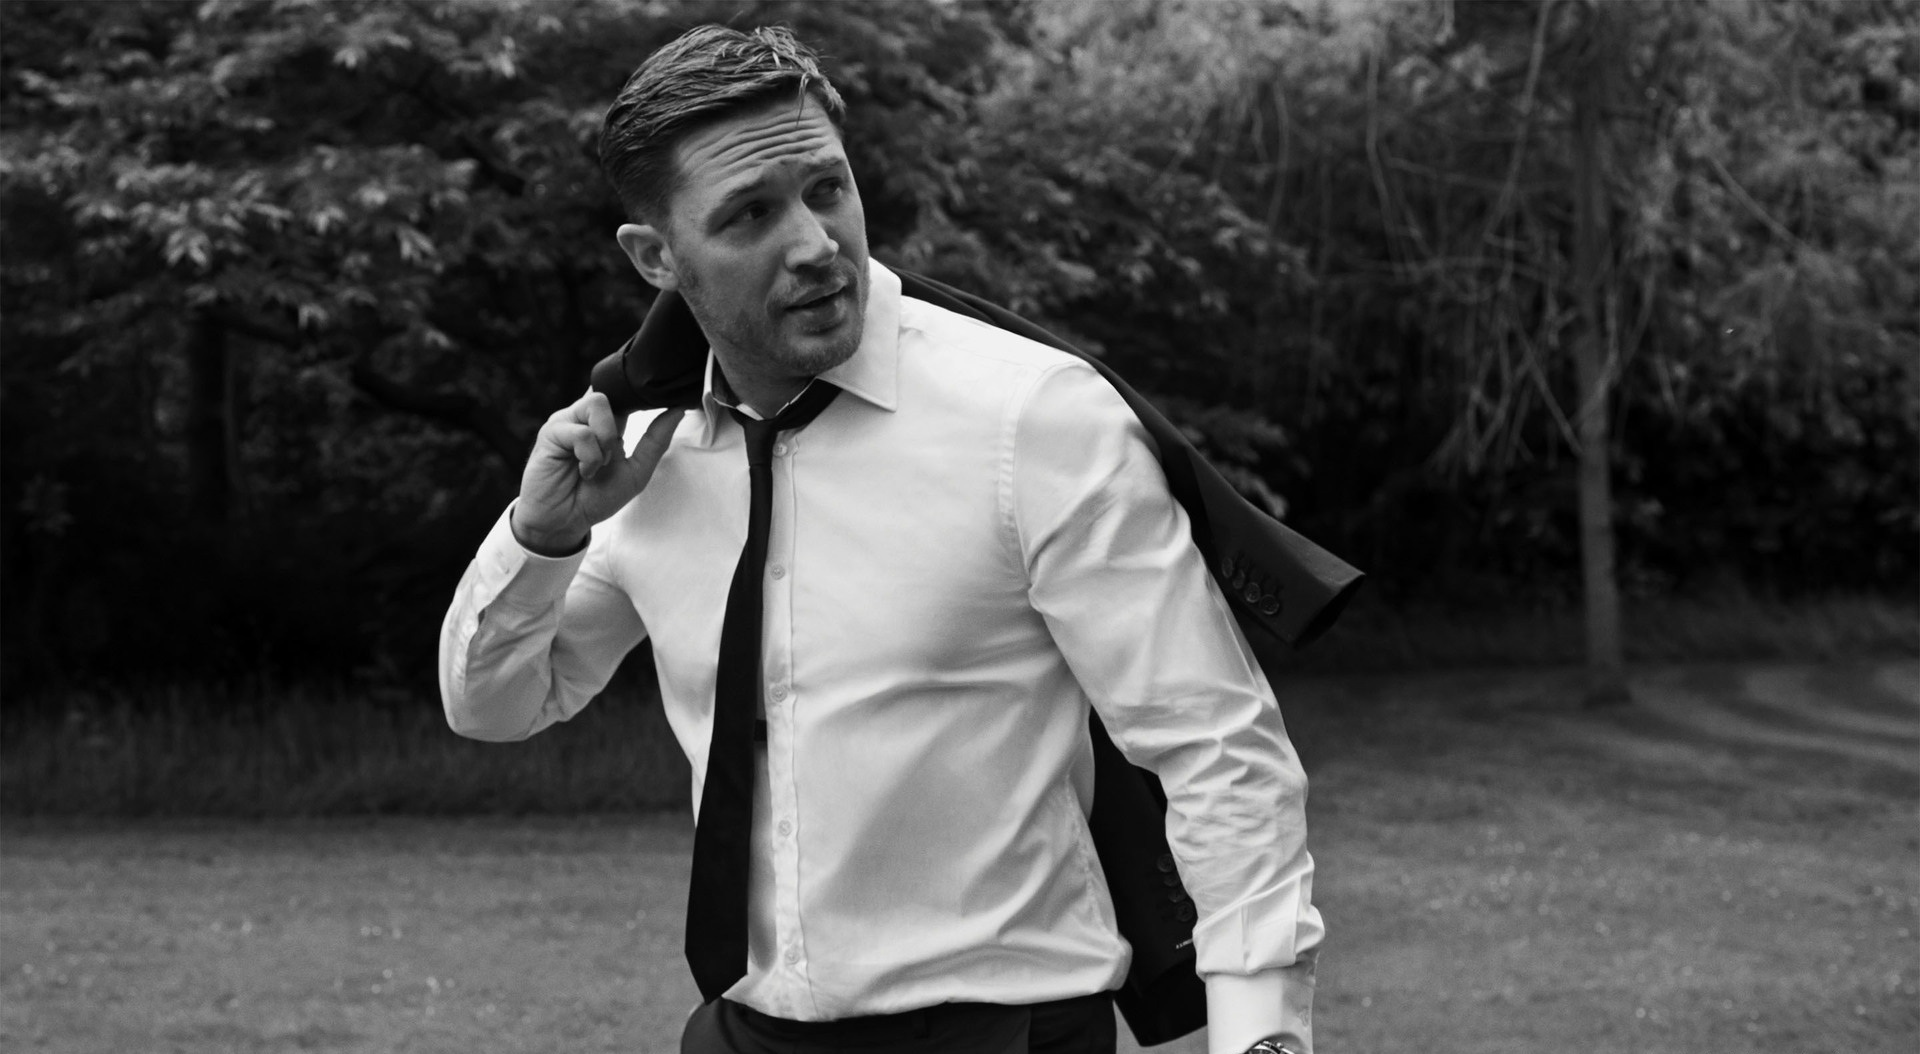 monochrome tom hardy celebrity wallpaper 51407